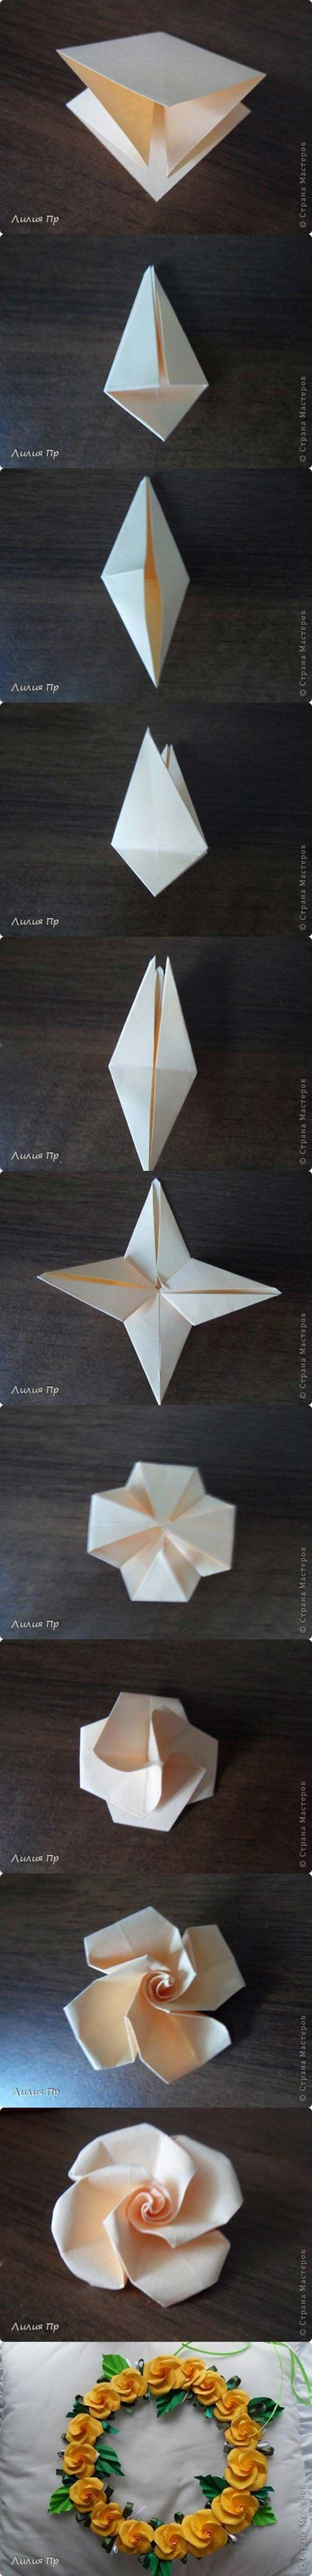 Origami folding flowers stars and animals as nursery room decoration - 40 Best Diy Origami Projects To Keep Your Entertained Today